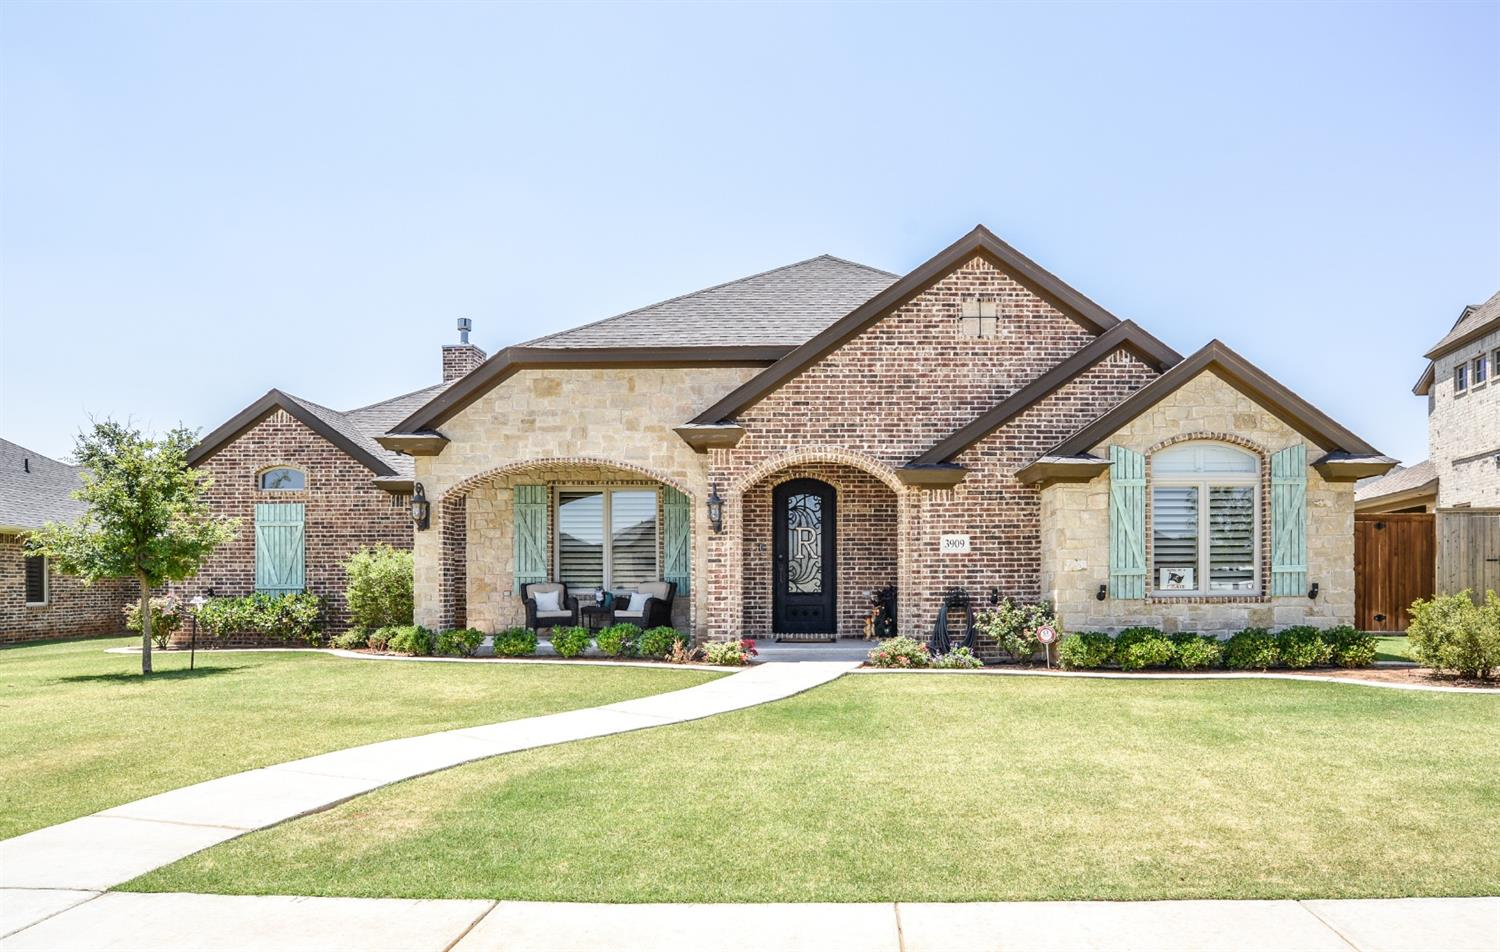 This beautiful Kim Craig home is definitely a house you want to see located in The Enclave at Kelsey Park. It is a 4/3/3 open concept home that has a large inviting living room with a stone fireplace as well as a common space for the kids to hang out. The isolated master suite has views of the back yard with a beautiful master bath. The covered patio faces the south with Beat the Heat shades and plenty of space to entertain. This house has beautiful built-ins and storage through out. There are plantation shutters in every room. Beautiful home in a great location on the south side of Lubbock.